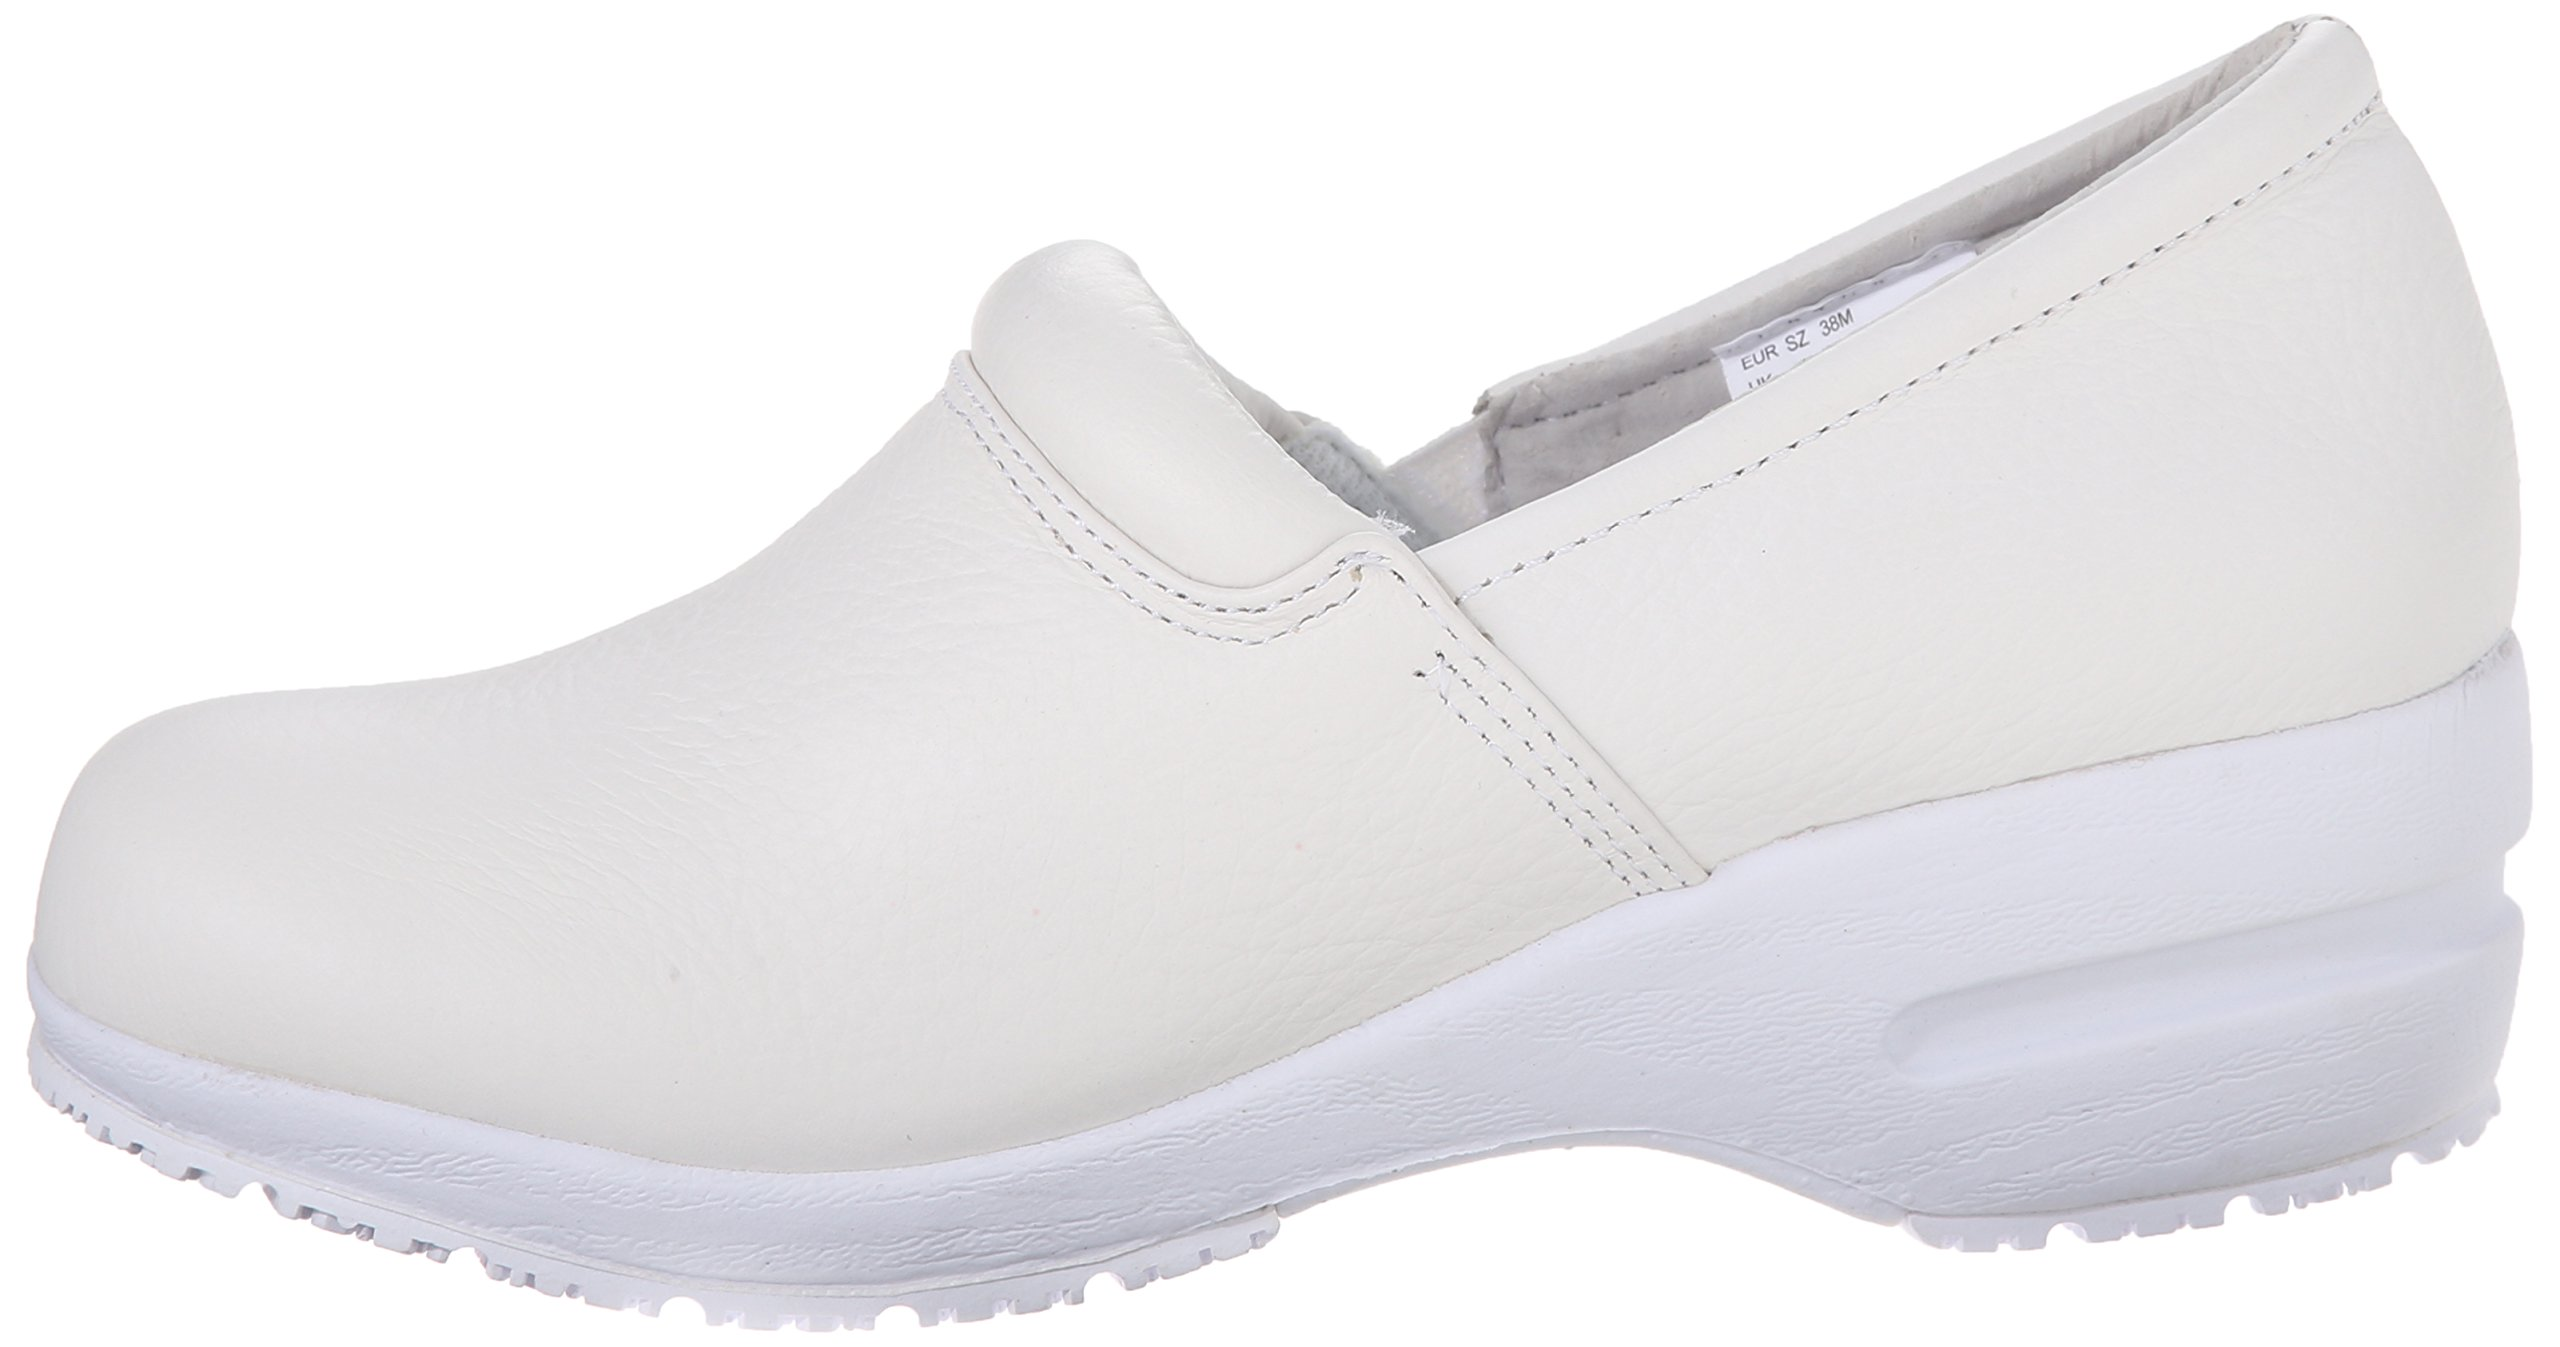 Cherokee Women's Patricia Work Shoe, White, 8 M US by Cherokee (Image #5)